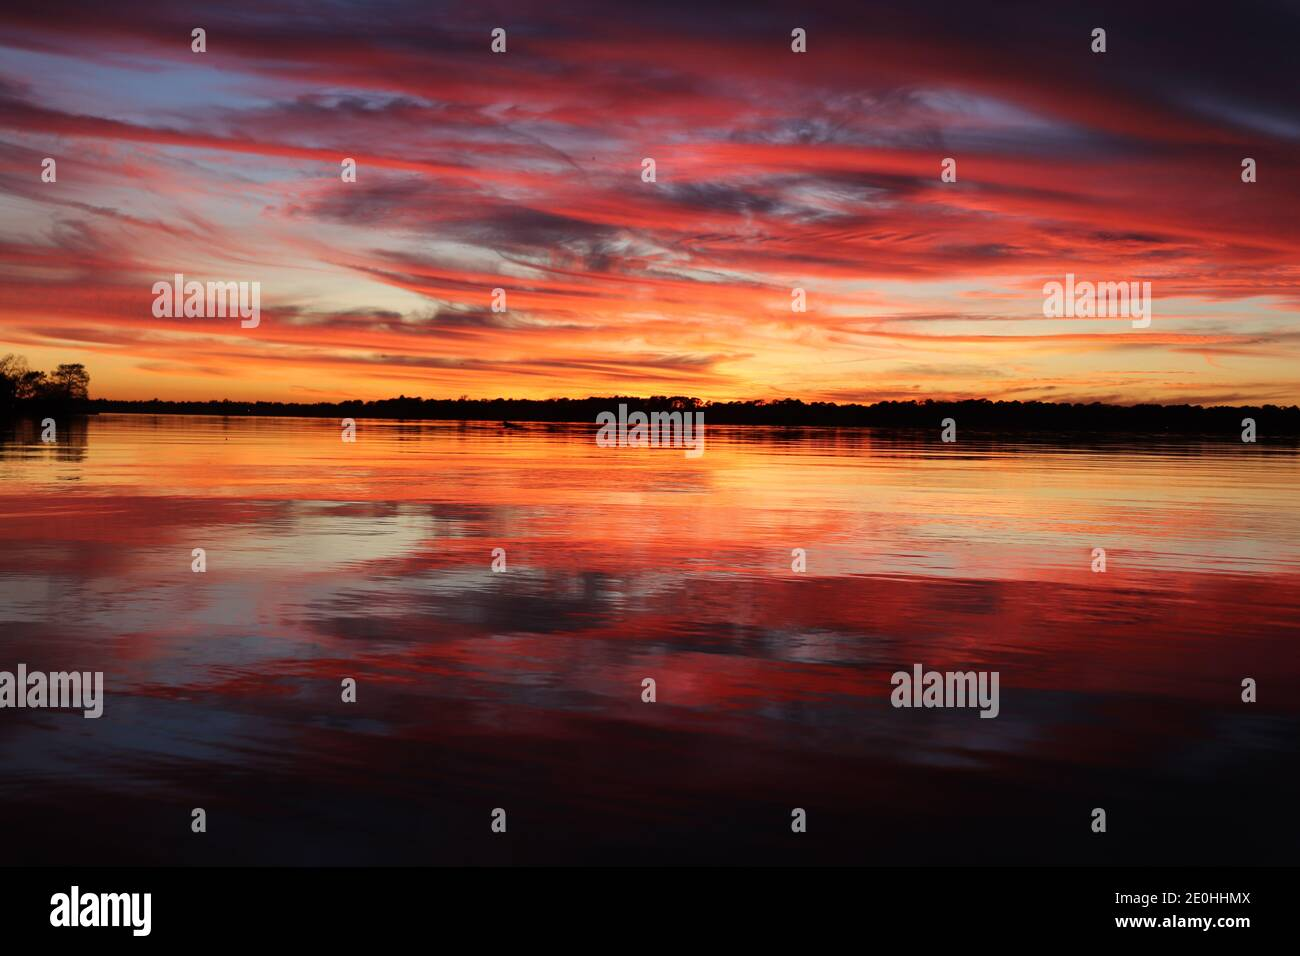 Sunset with mirror reflections on the surface of the water. Vibrant colors of red and golden swirls from the blue sky to tranquil tree-lined horizon. Stock Photo